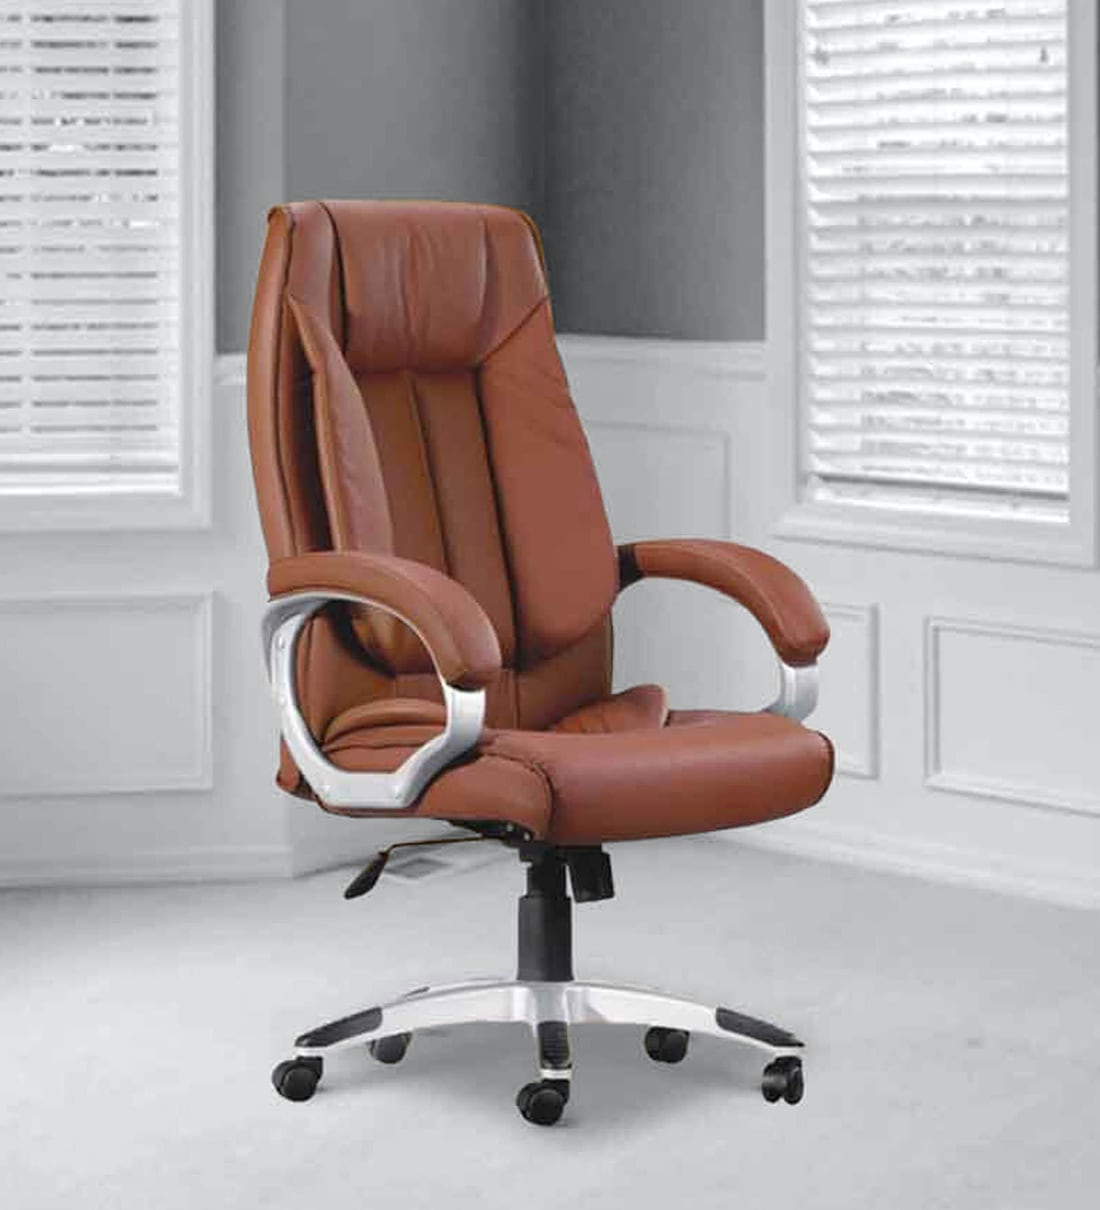 Buy Executive Chair In Brown Colour By Adiko Systems